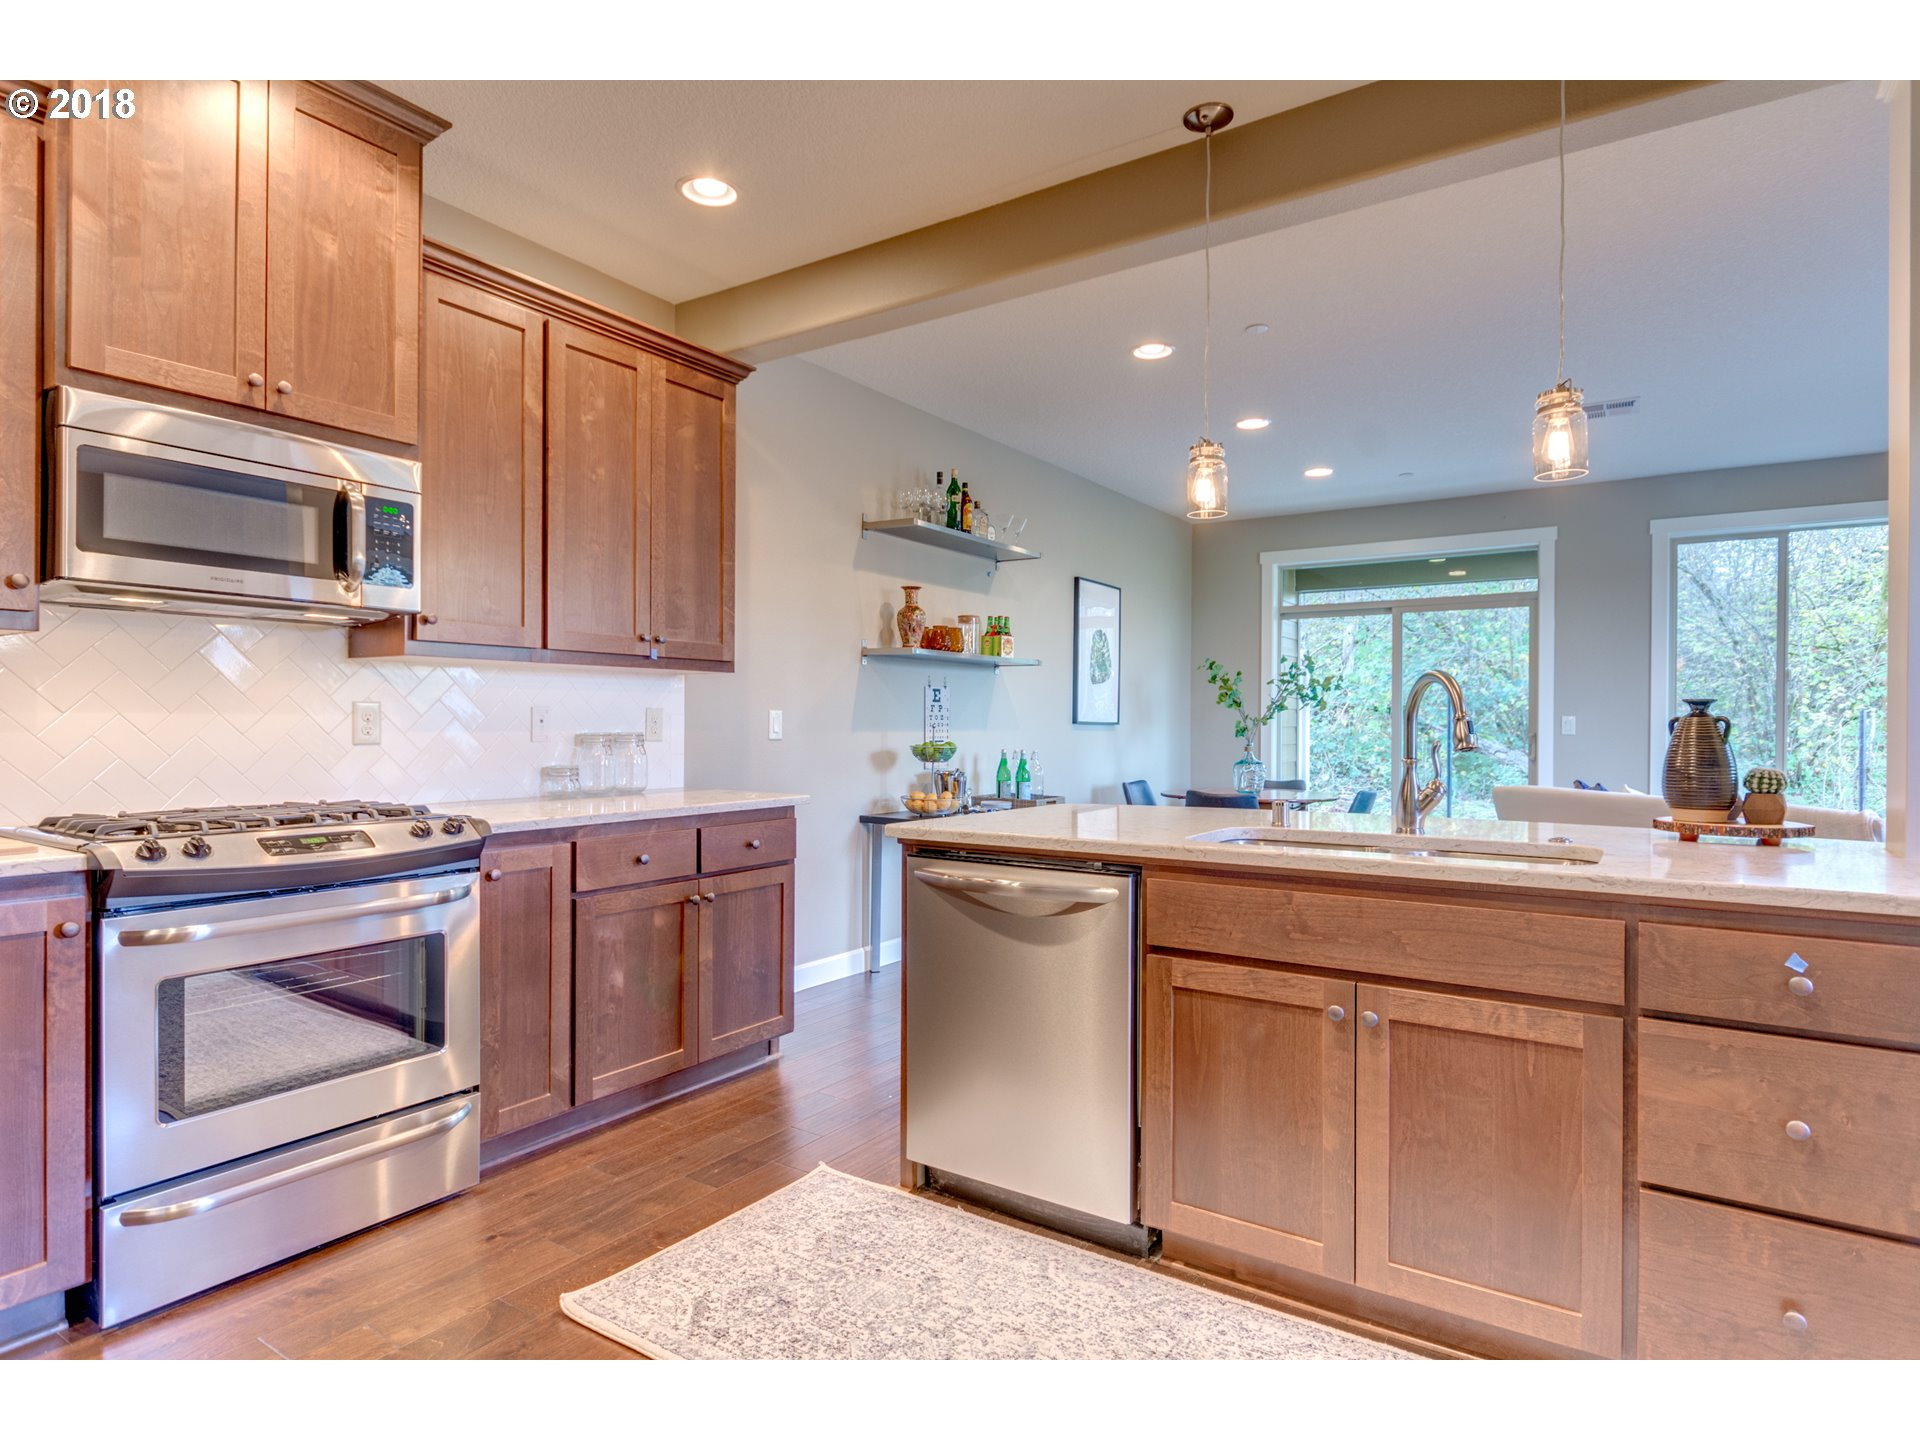 3834 SE 165th CT Vancouver, WA 98683 - MLS #: 18300121